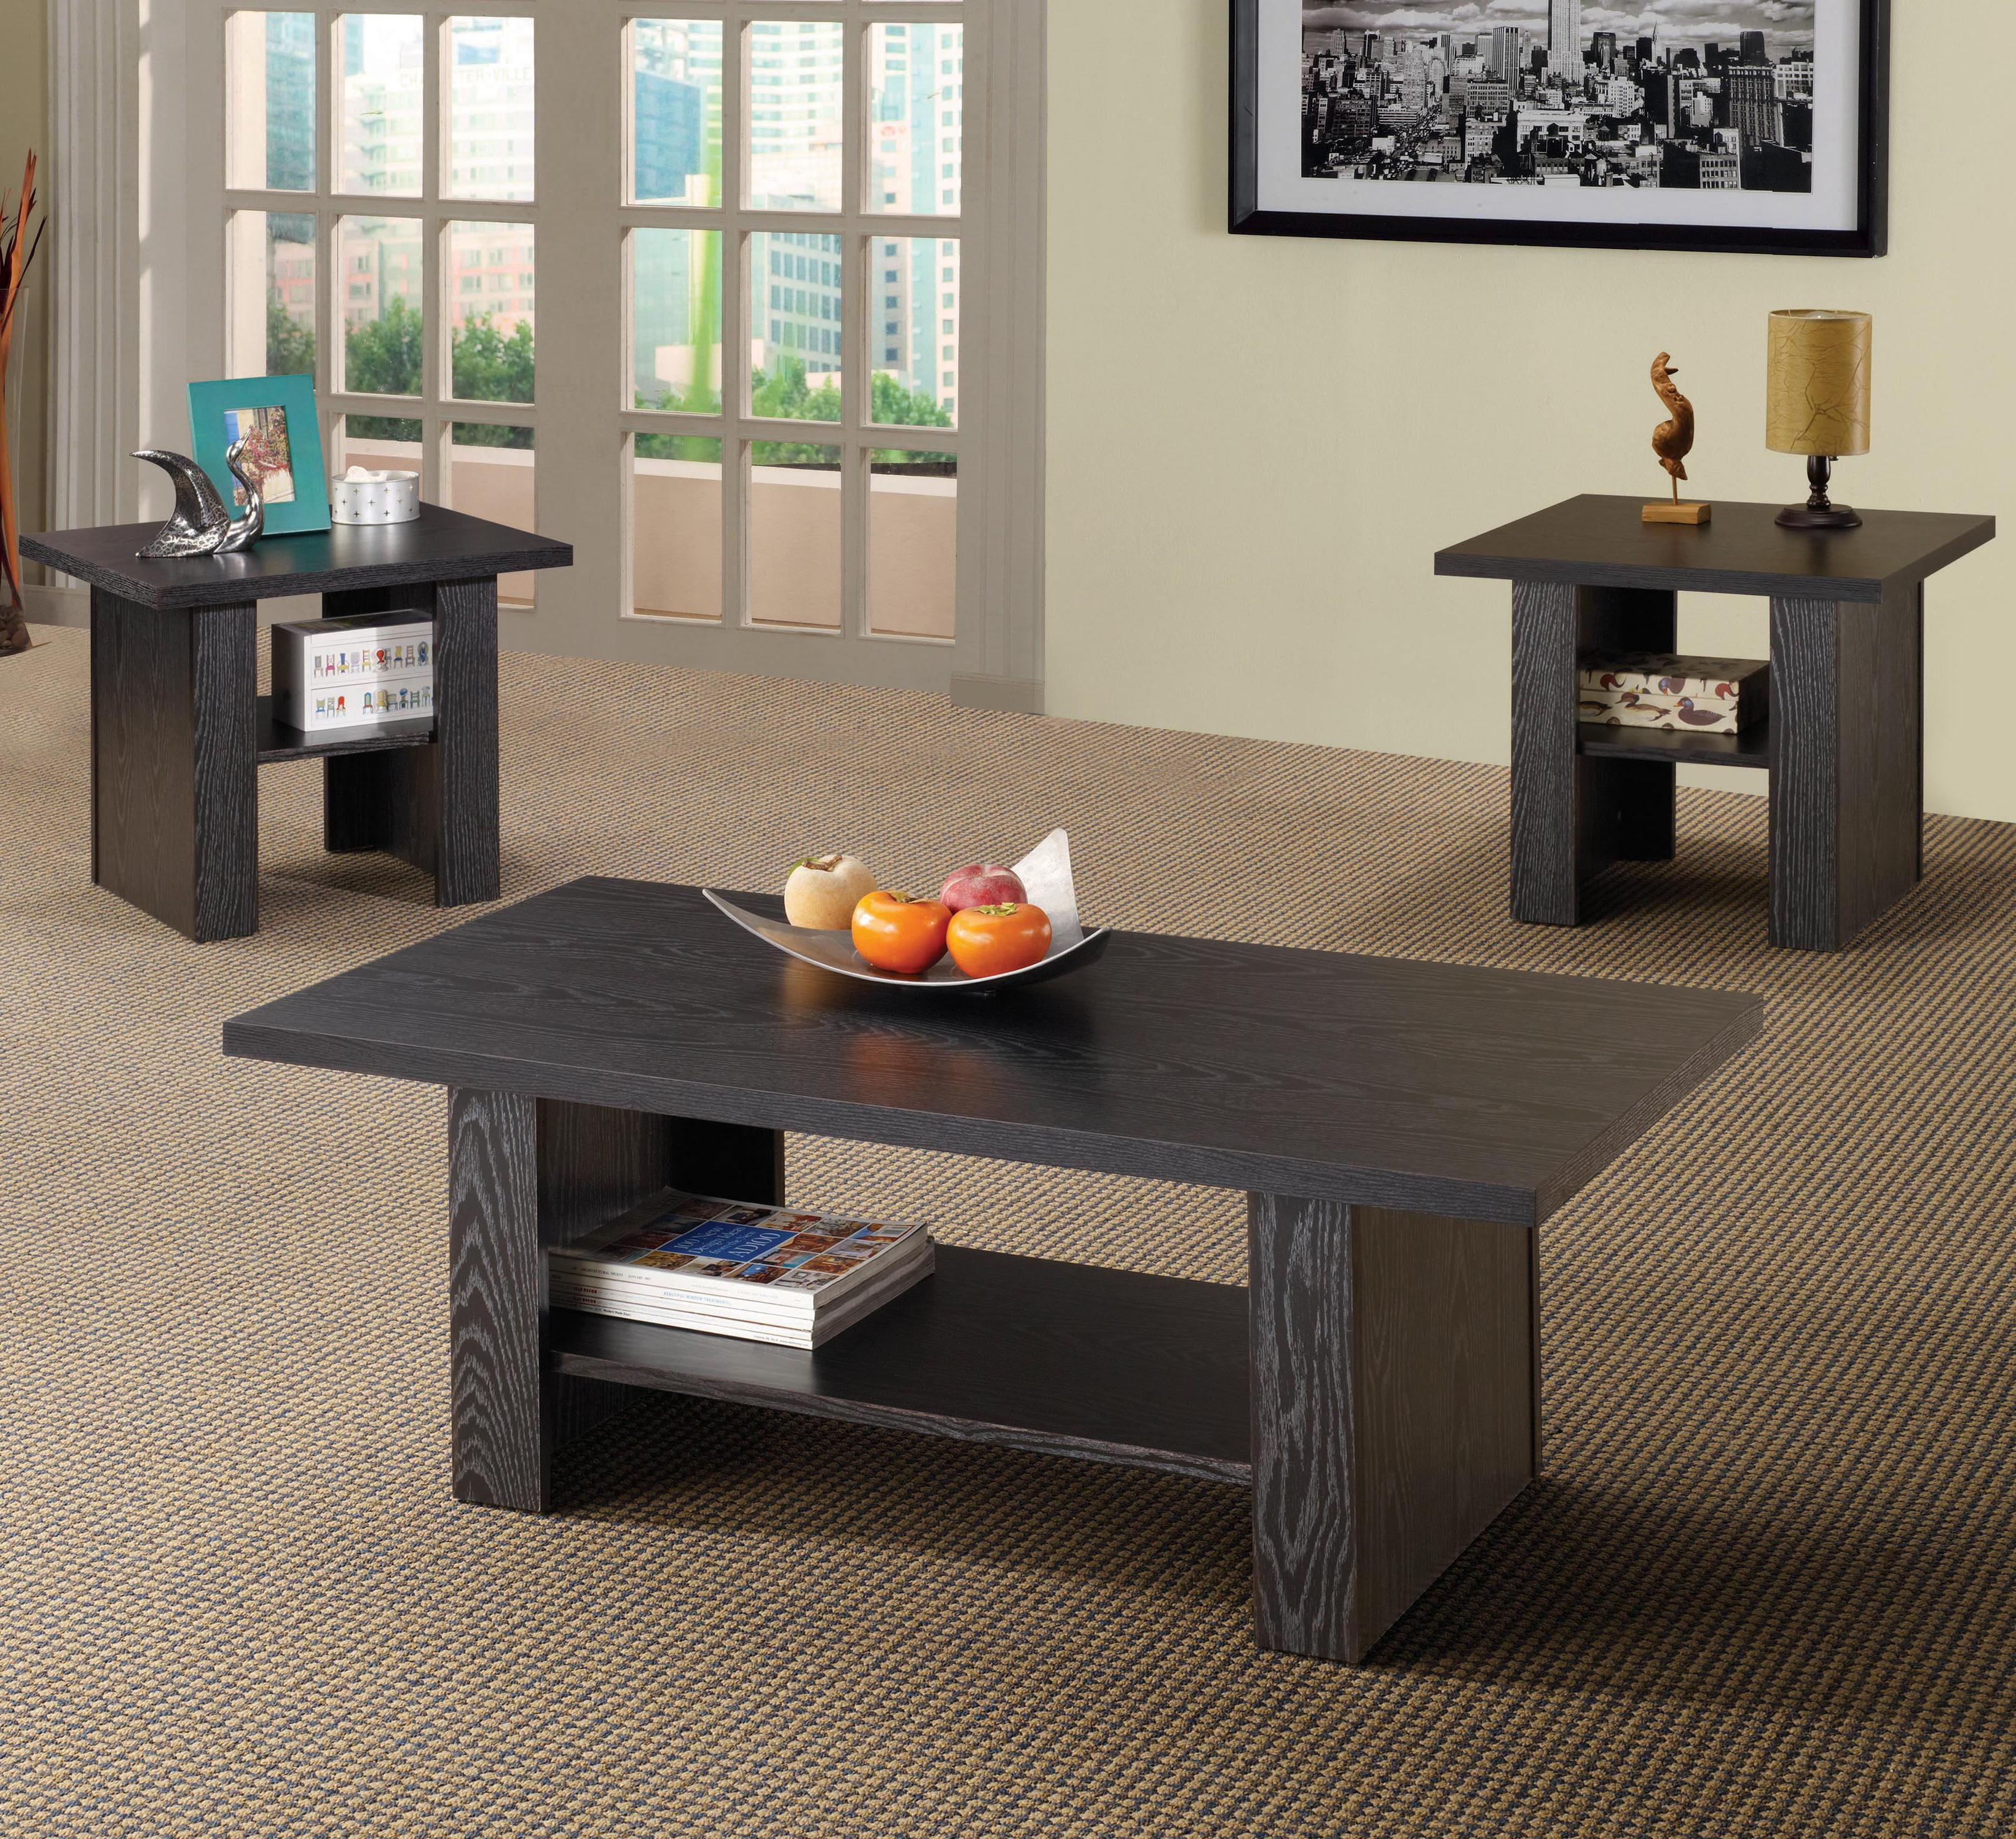 32+ Coffee Table And End Table Sets Pics